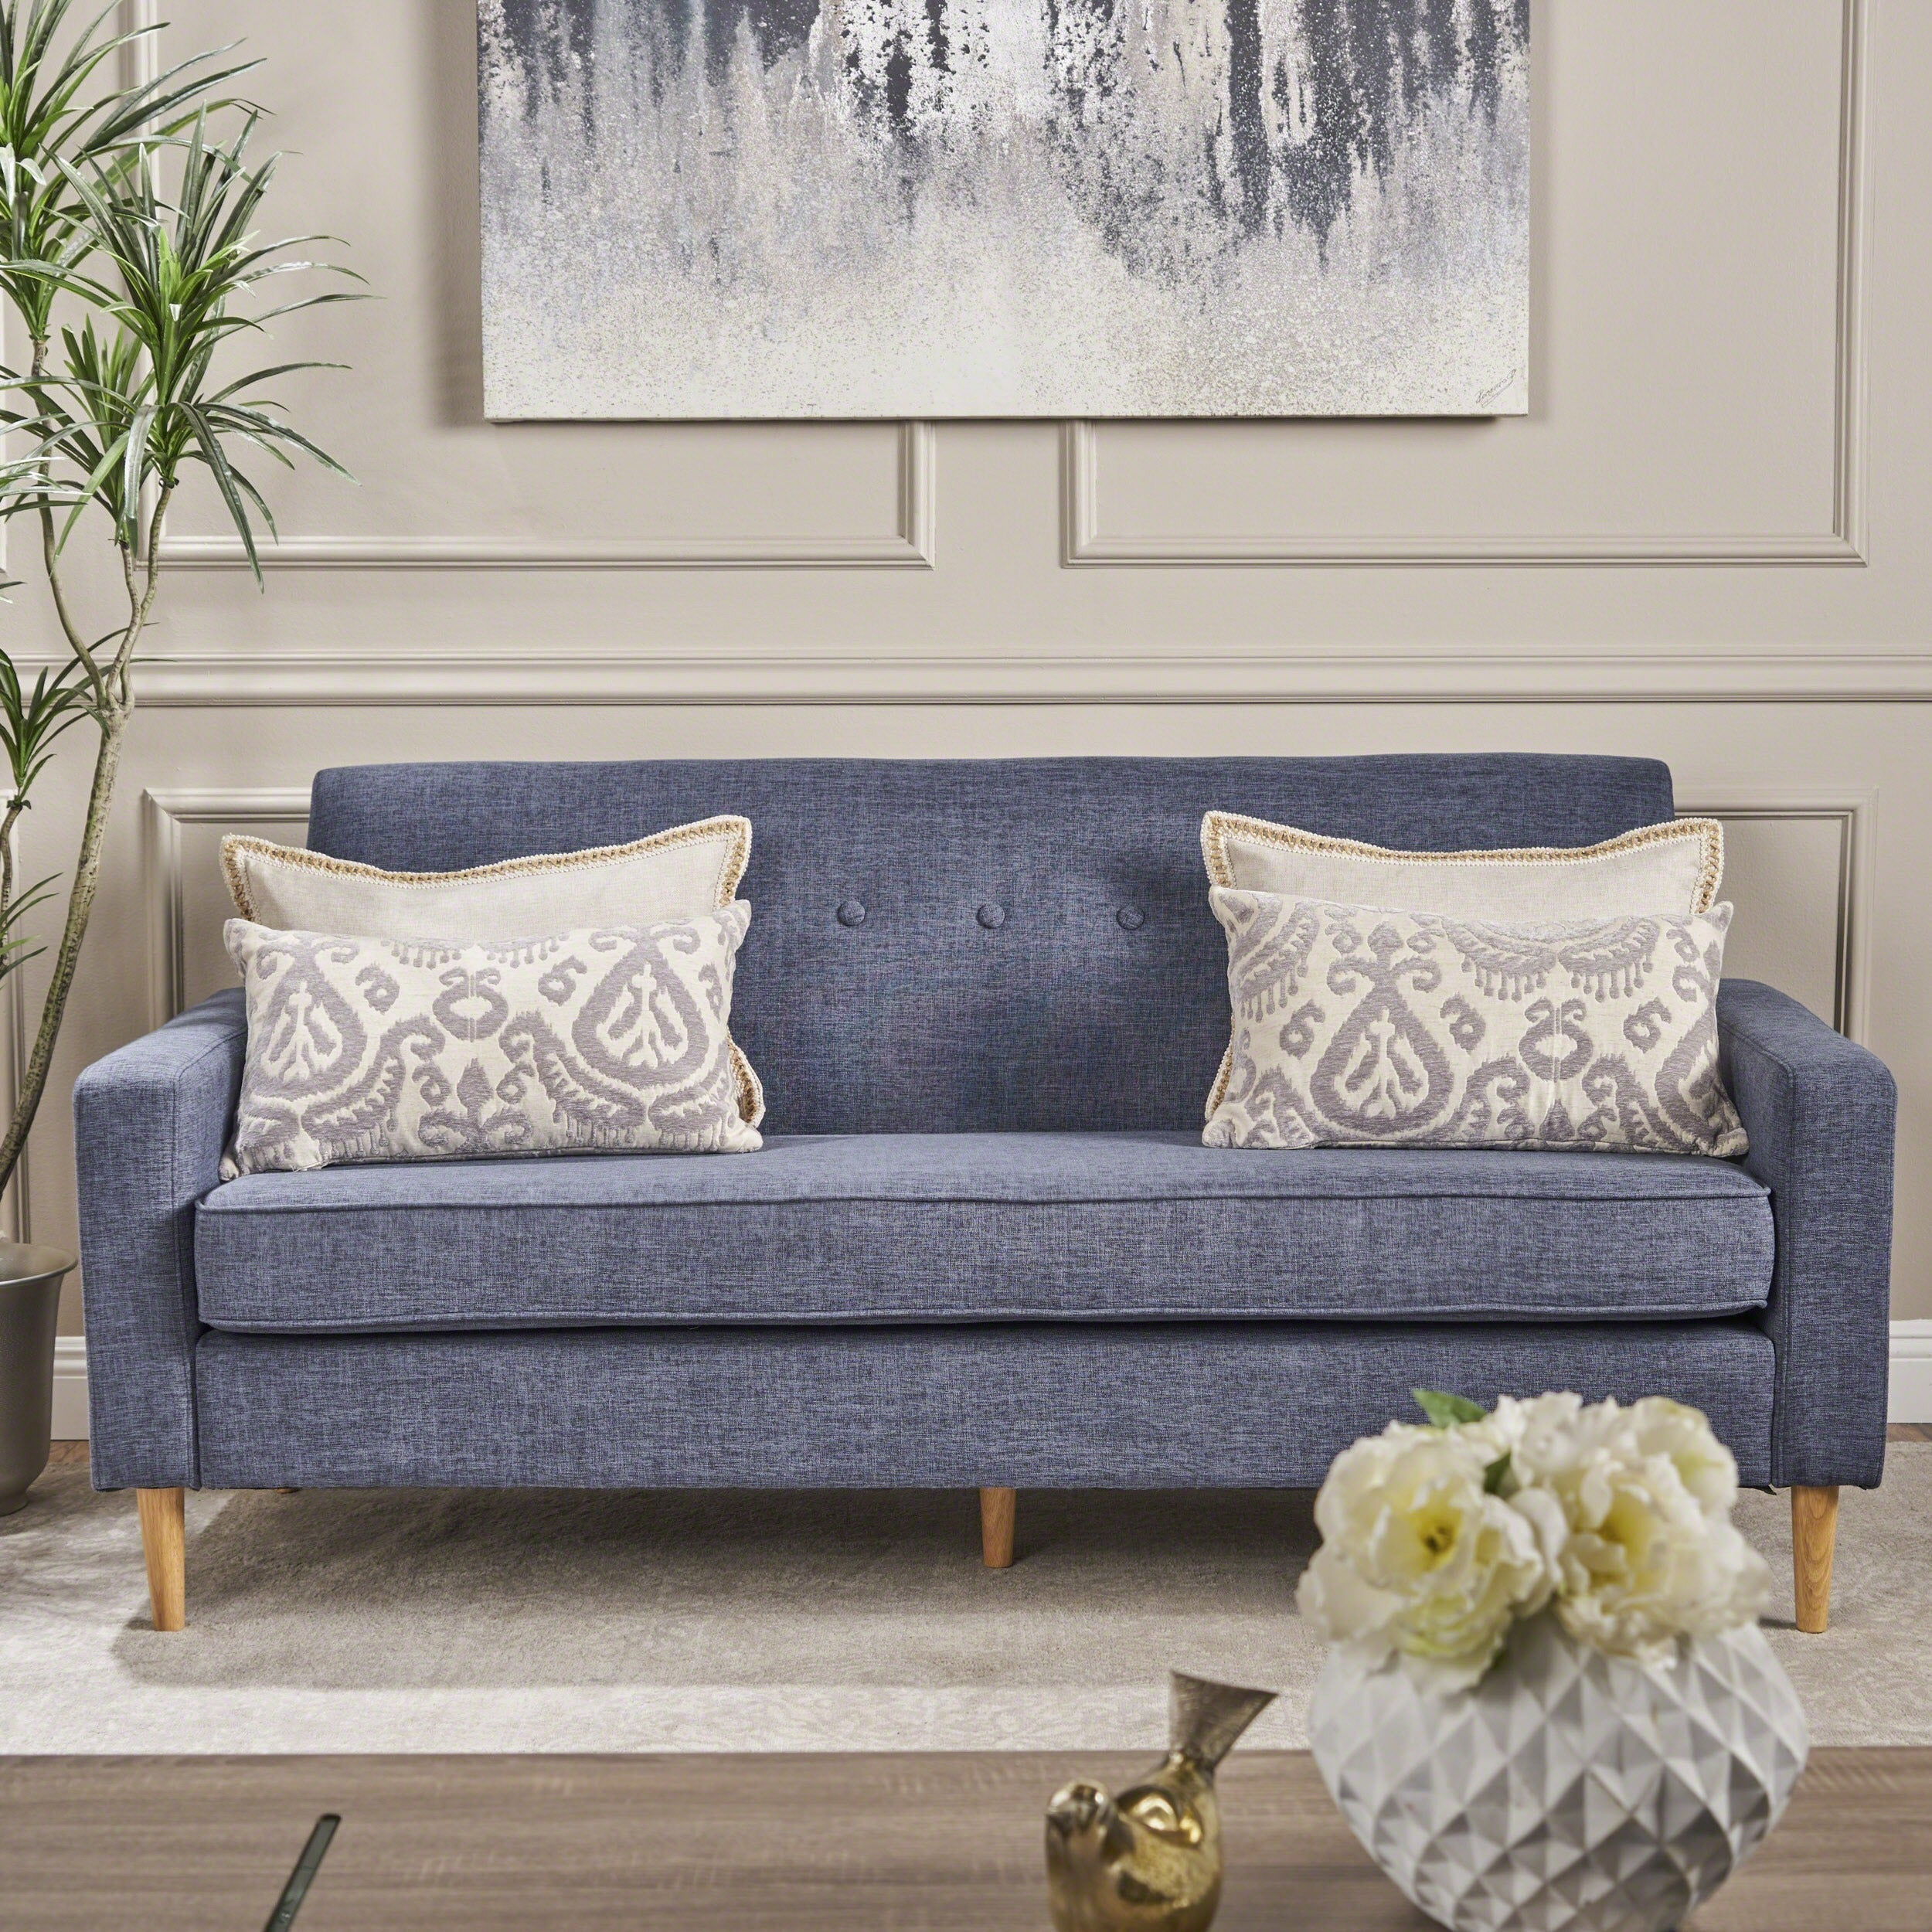 Details about Sawyer Mid-century Modern 3-seater Fabric Sofa by